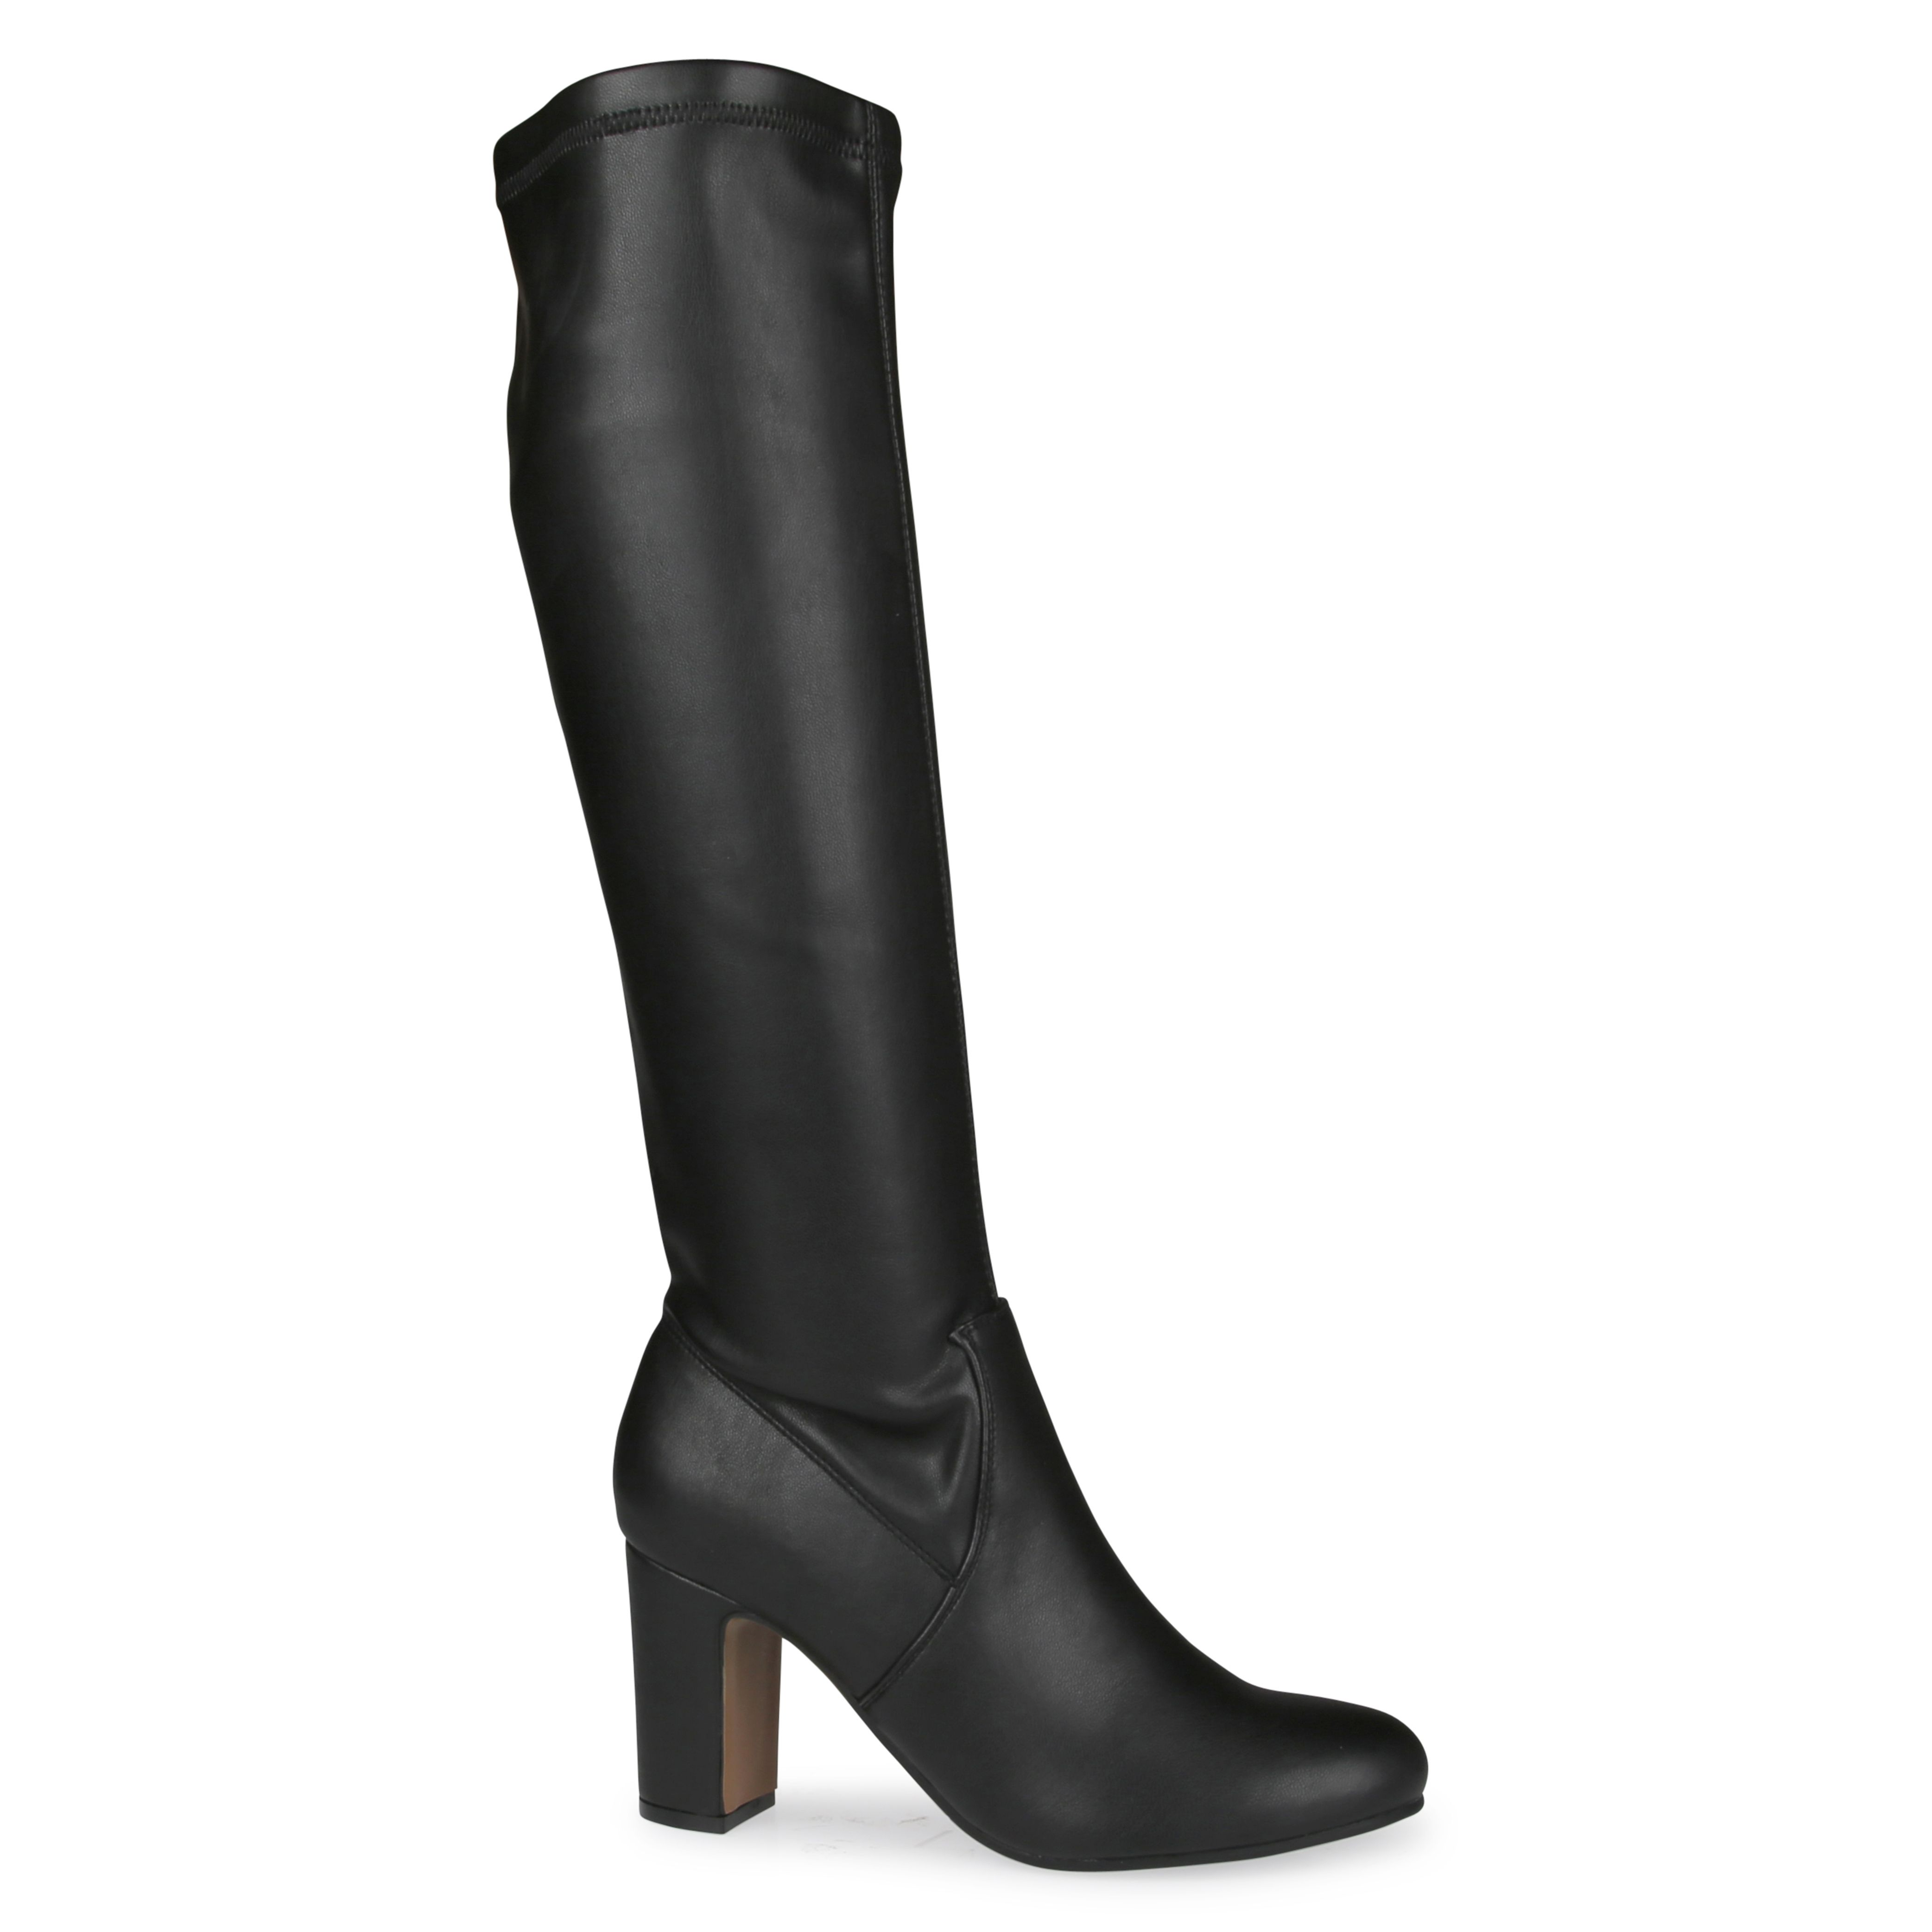 Shoe Connection Verali Zak Black Knee Boot 139 99 Https Www Shoeconnection Co Nz Womens Boots Knee Boots V Womens Knee High Boots Boots Knee High Boots